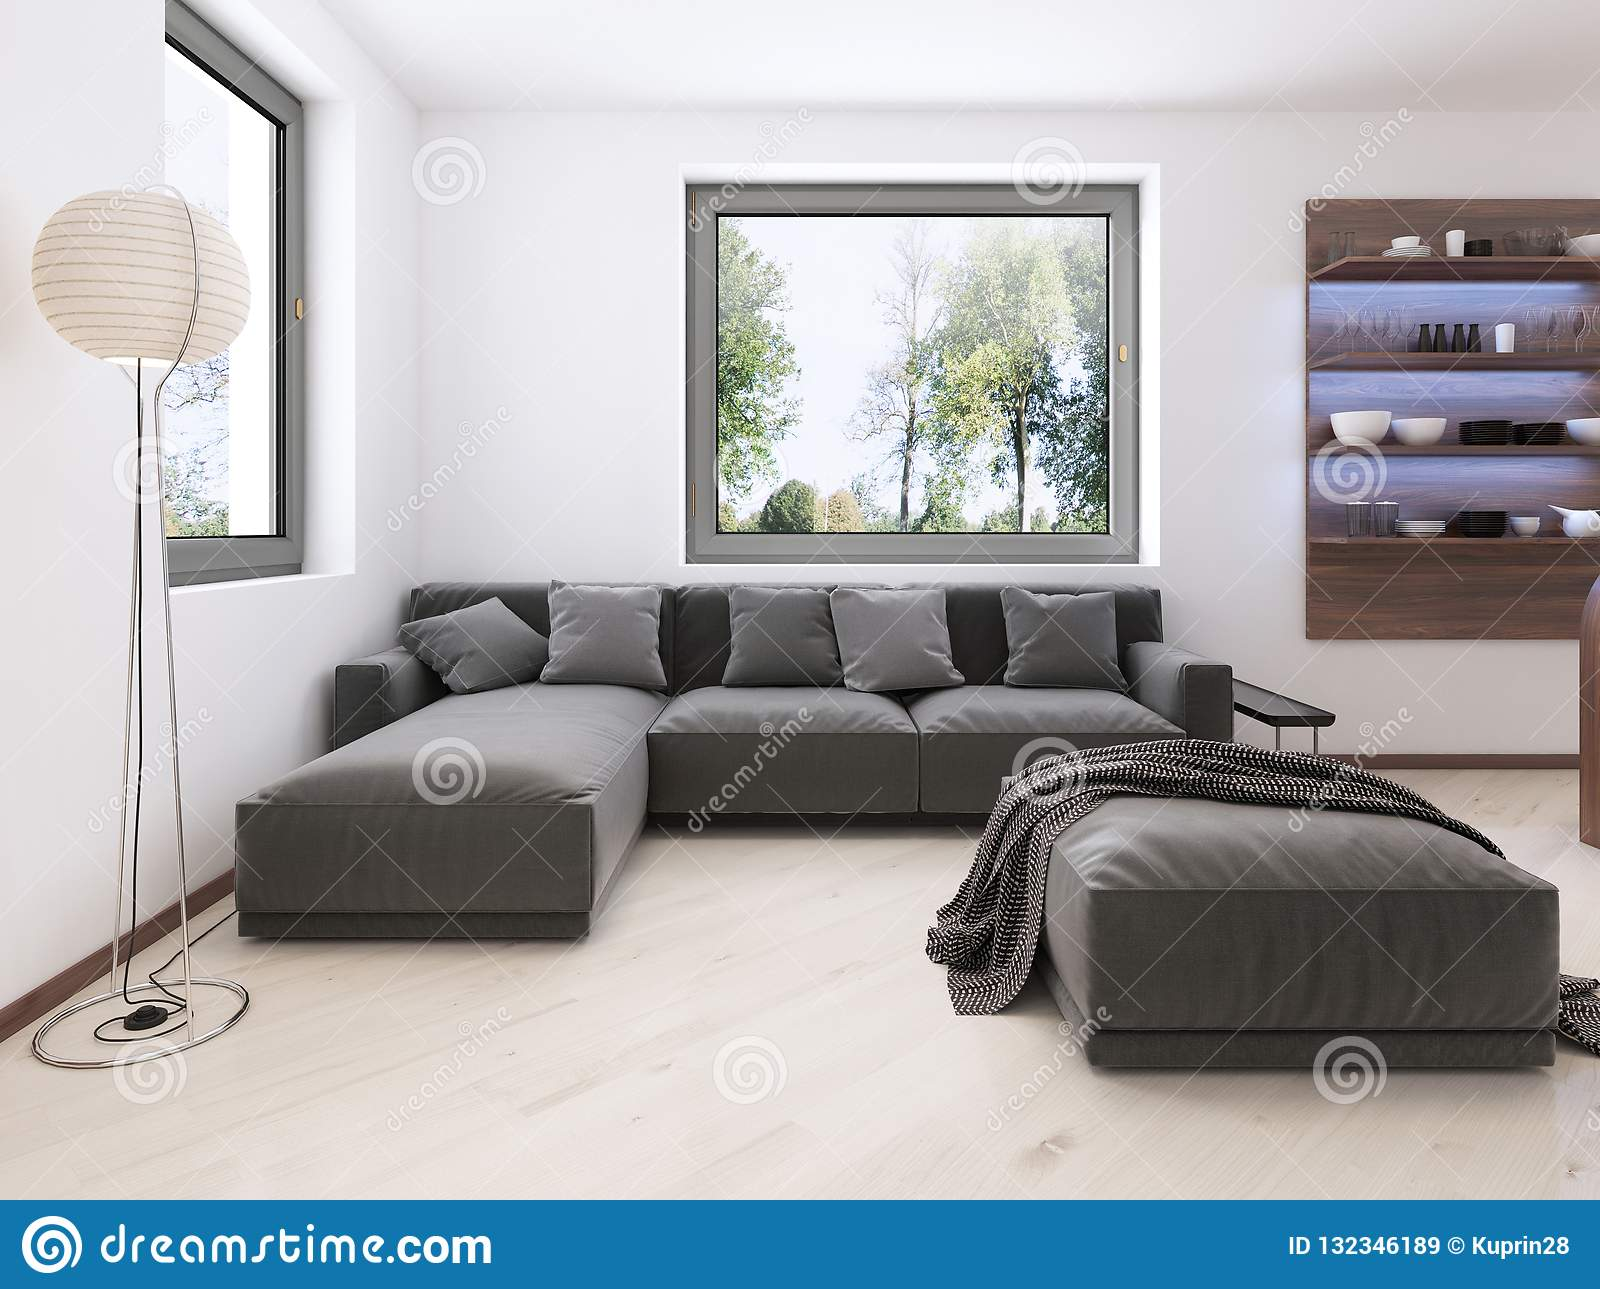 Modern Gray Sofa In The Contemporary Style Lounge Stock Illustration Illustration Of Frame Elegance 132346189